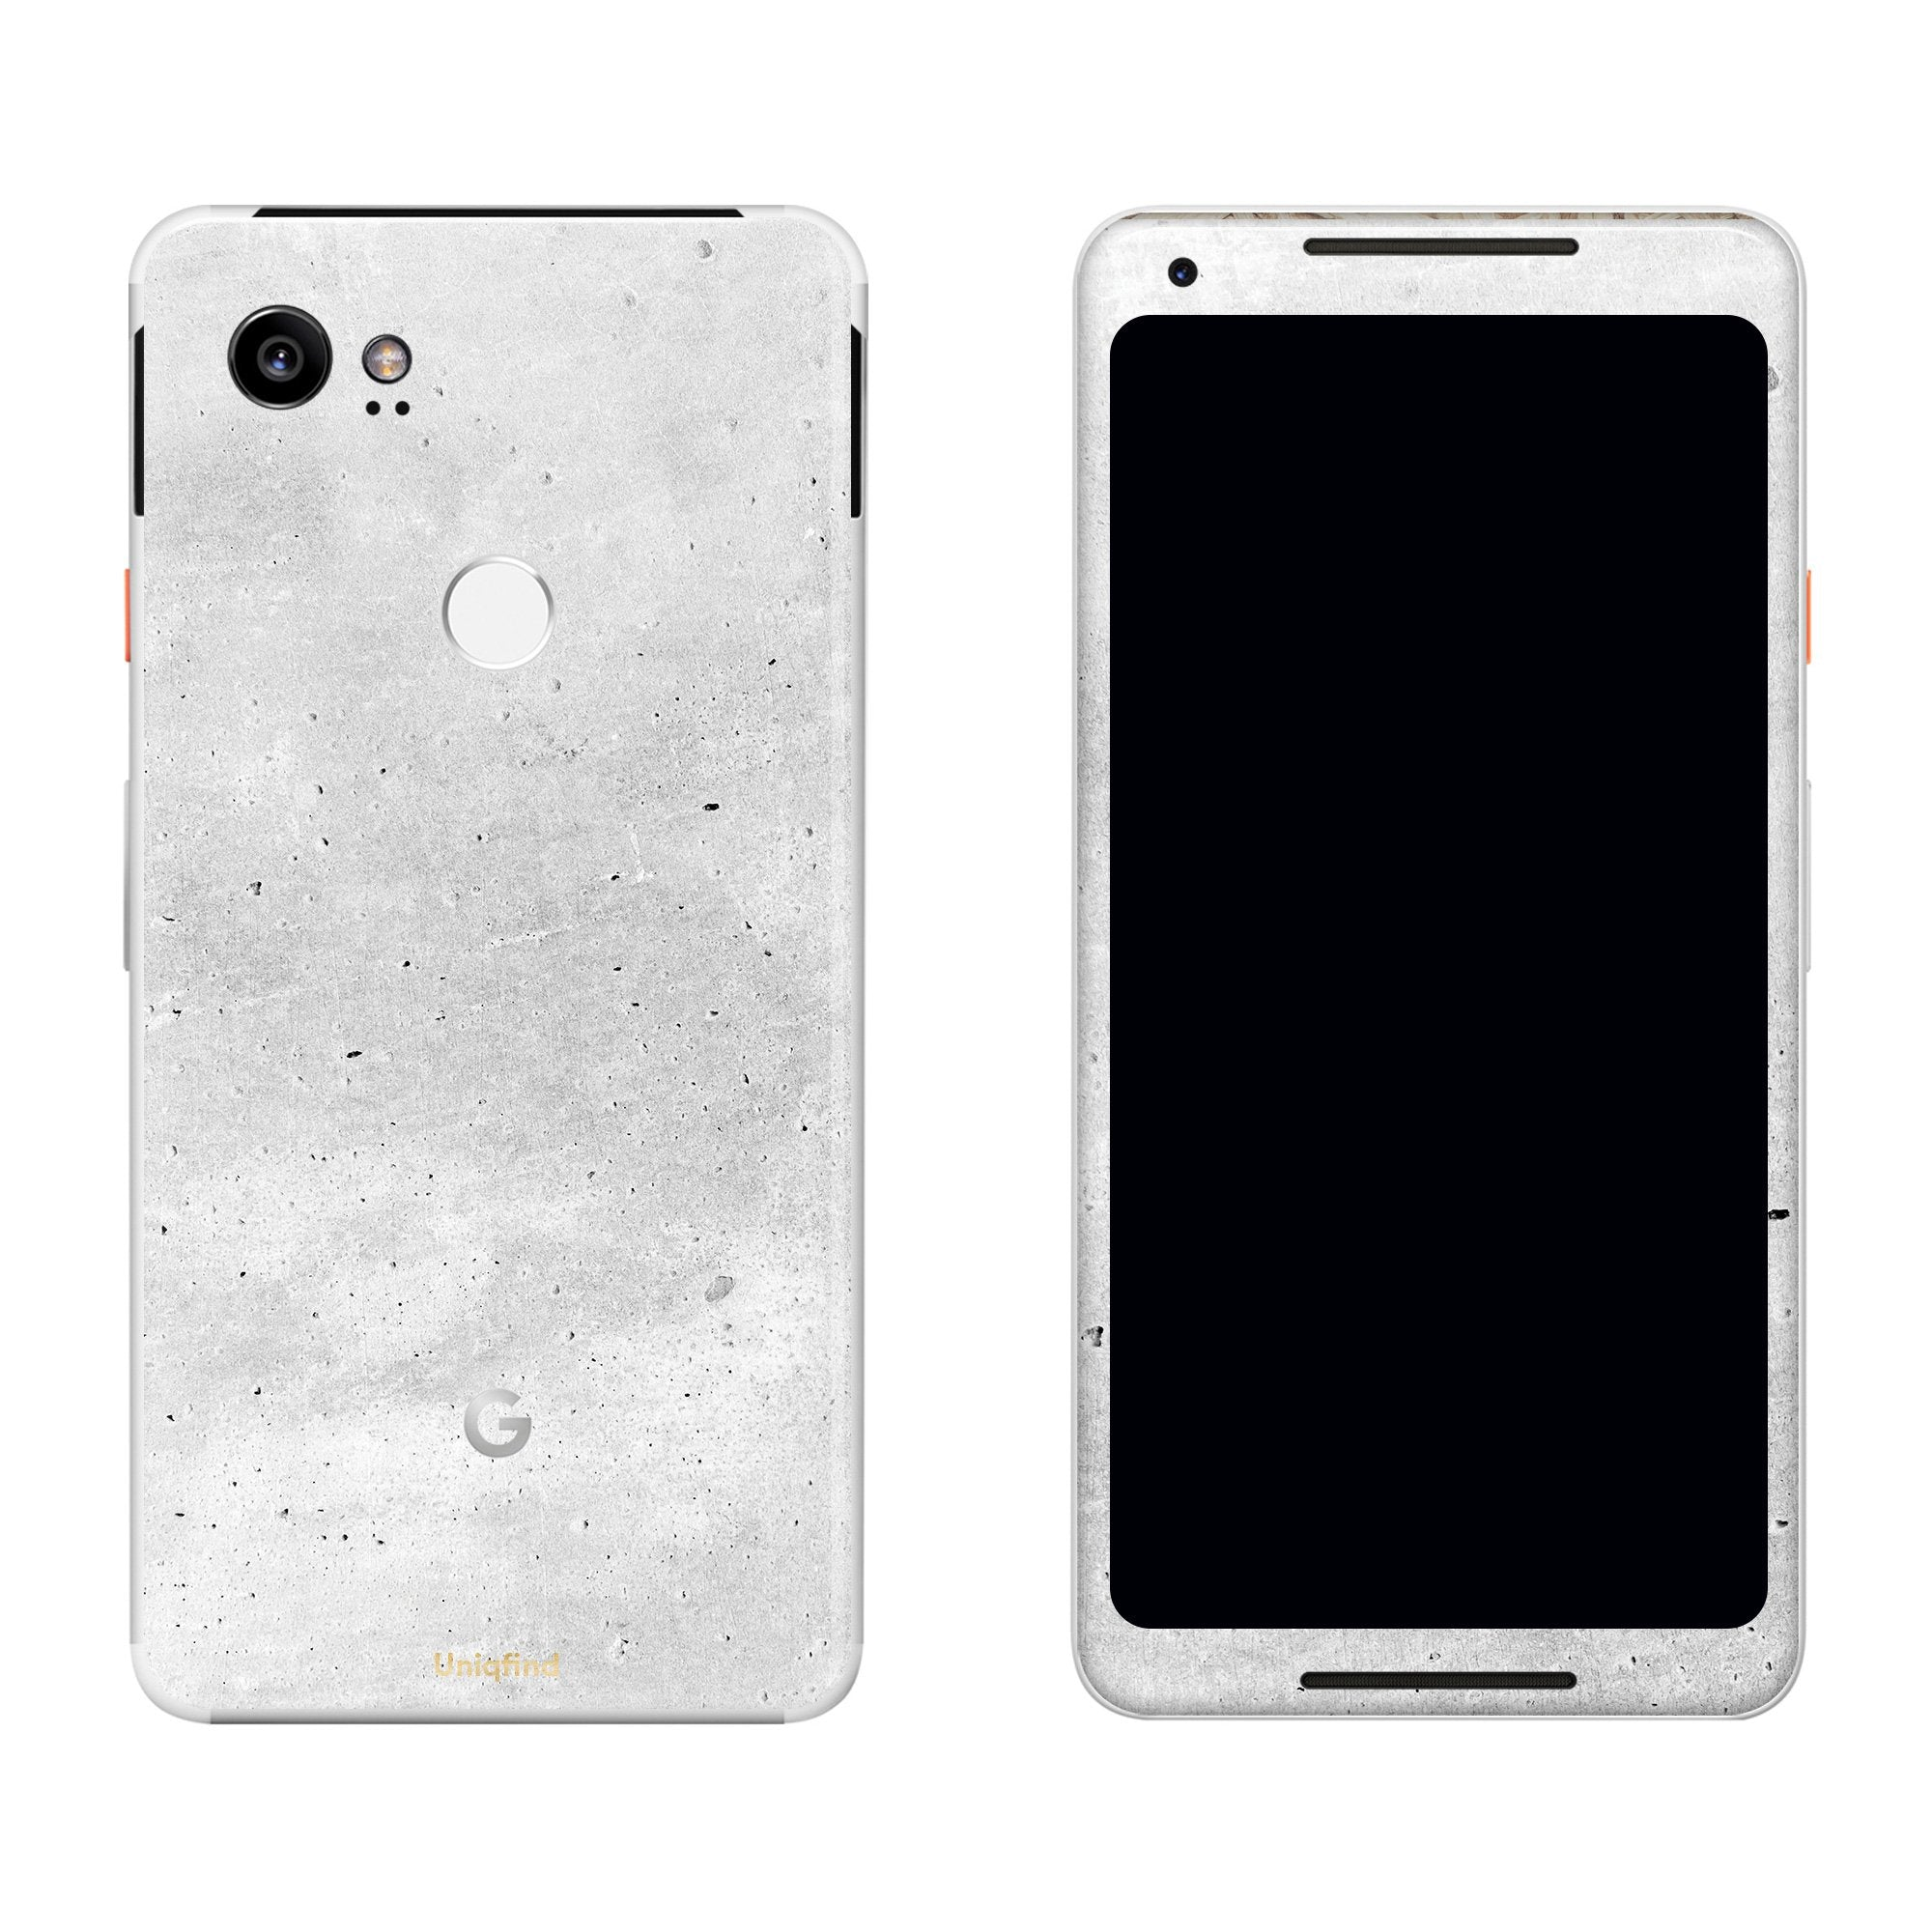 Concrete Pixel 2 XL Skin + Case